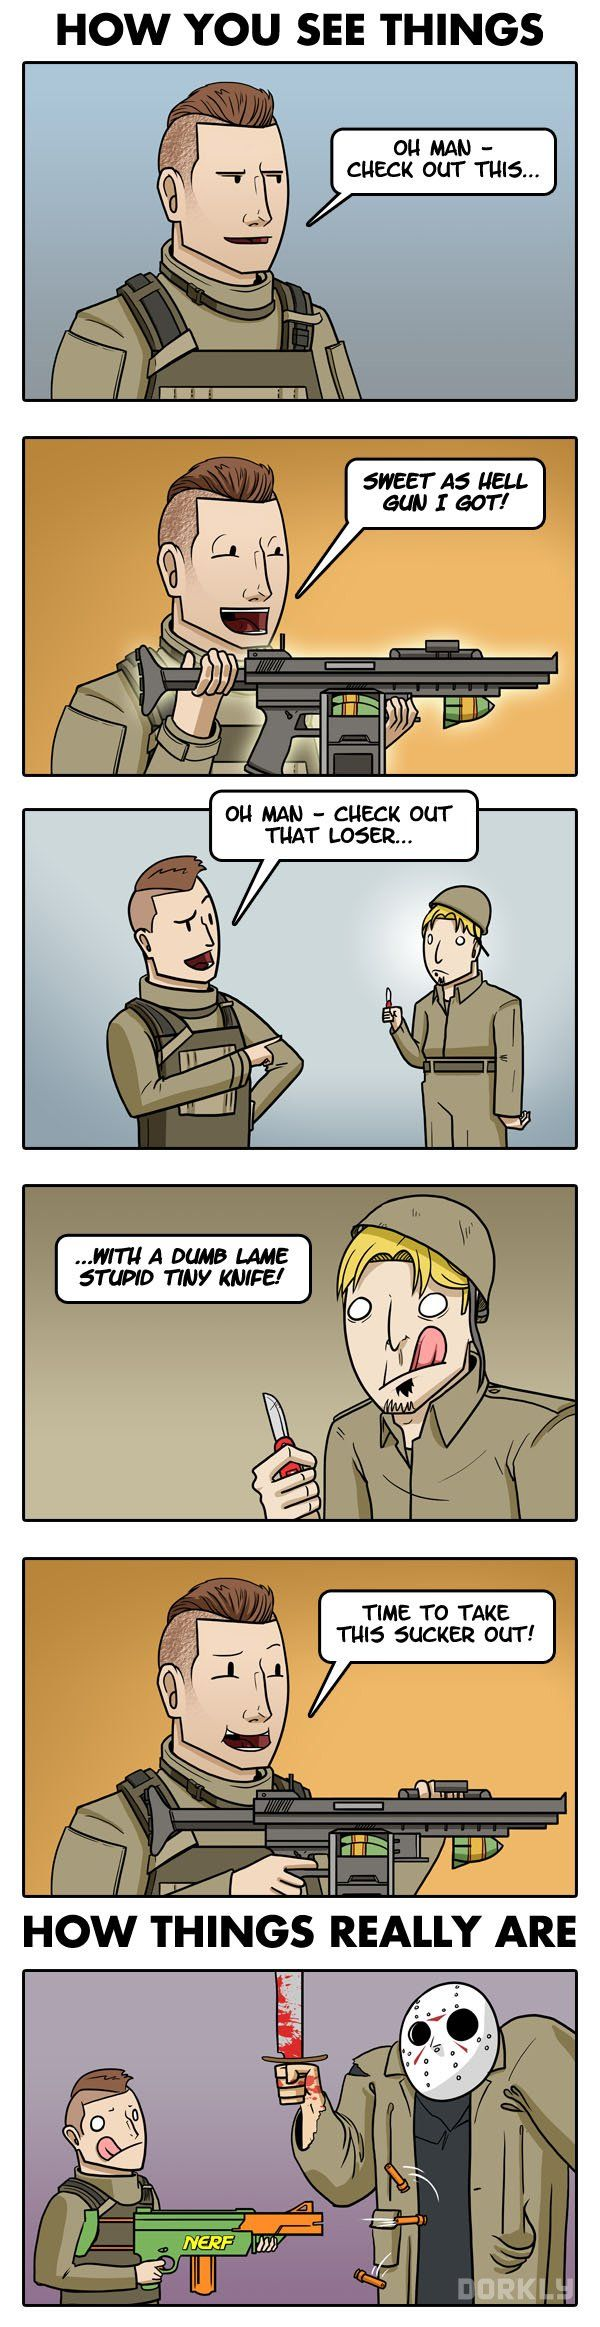 Funny call of duty 2 pictures download funny call of duty quotes - View The Reality Of Call Of Duty Multiplayer And More Funny Posts On Dorkly